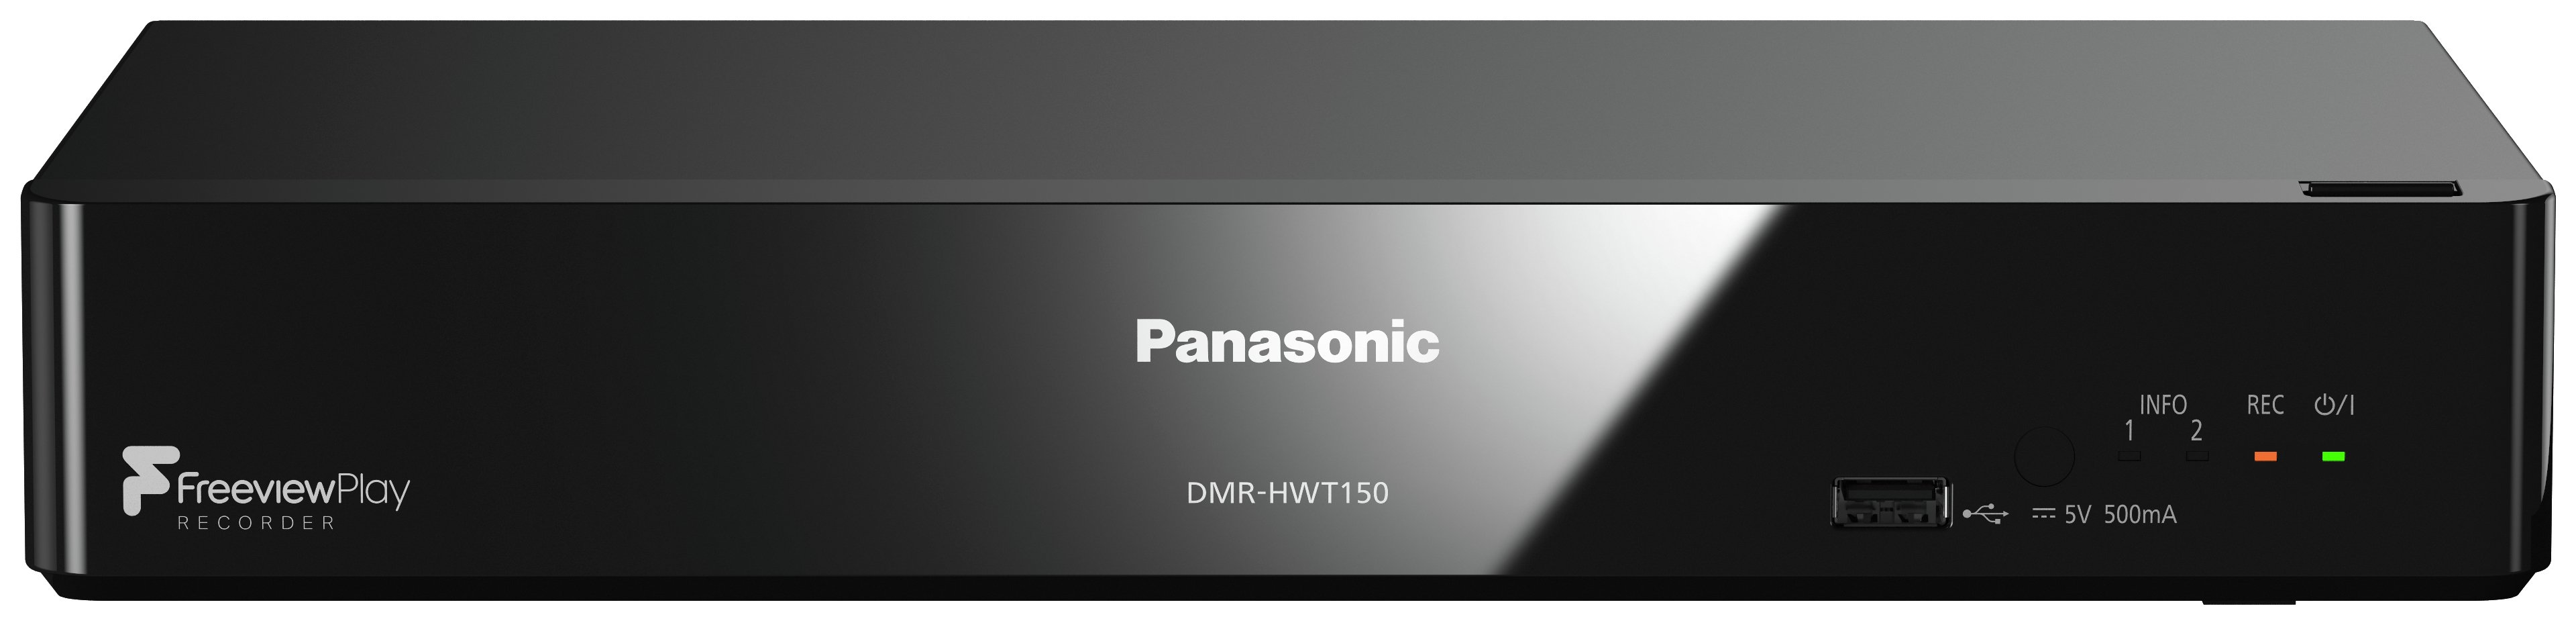 Panasonic DMR-HWT150EB 500GB Freeview Play Recorder